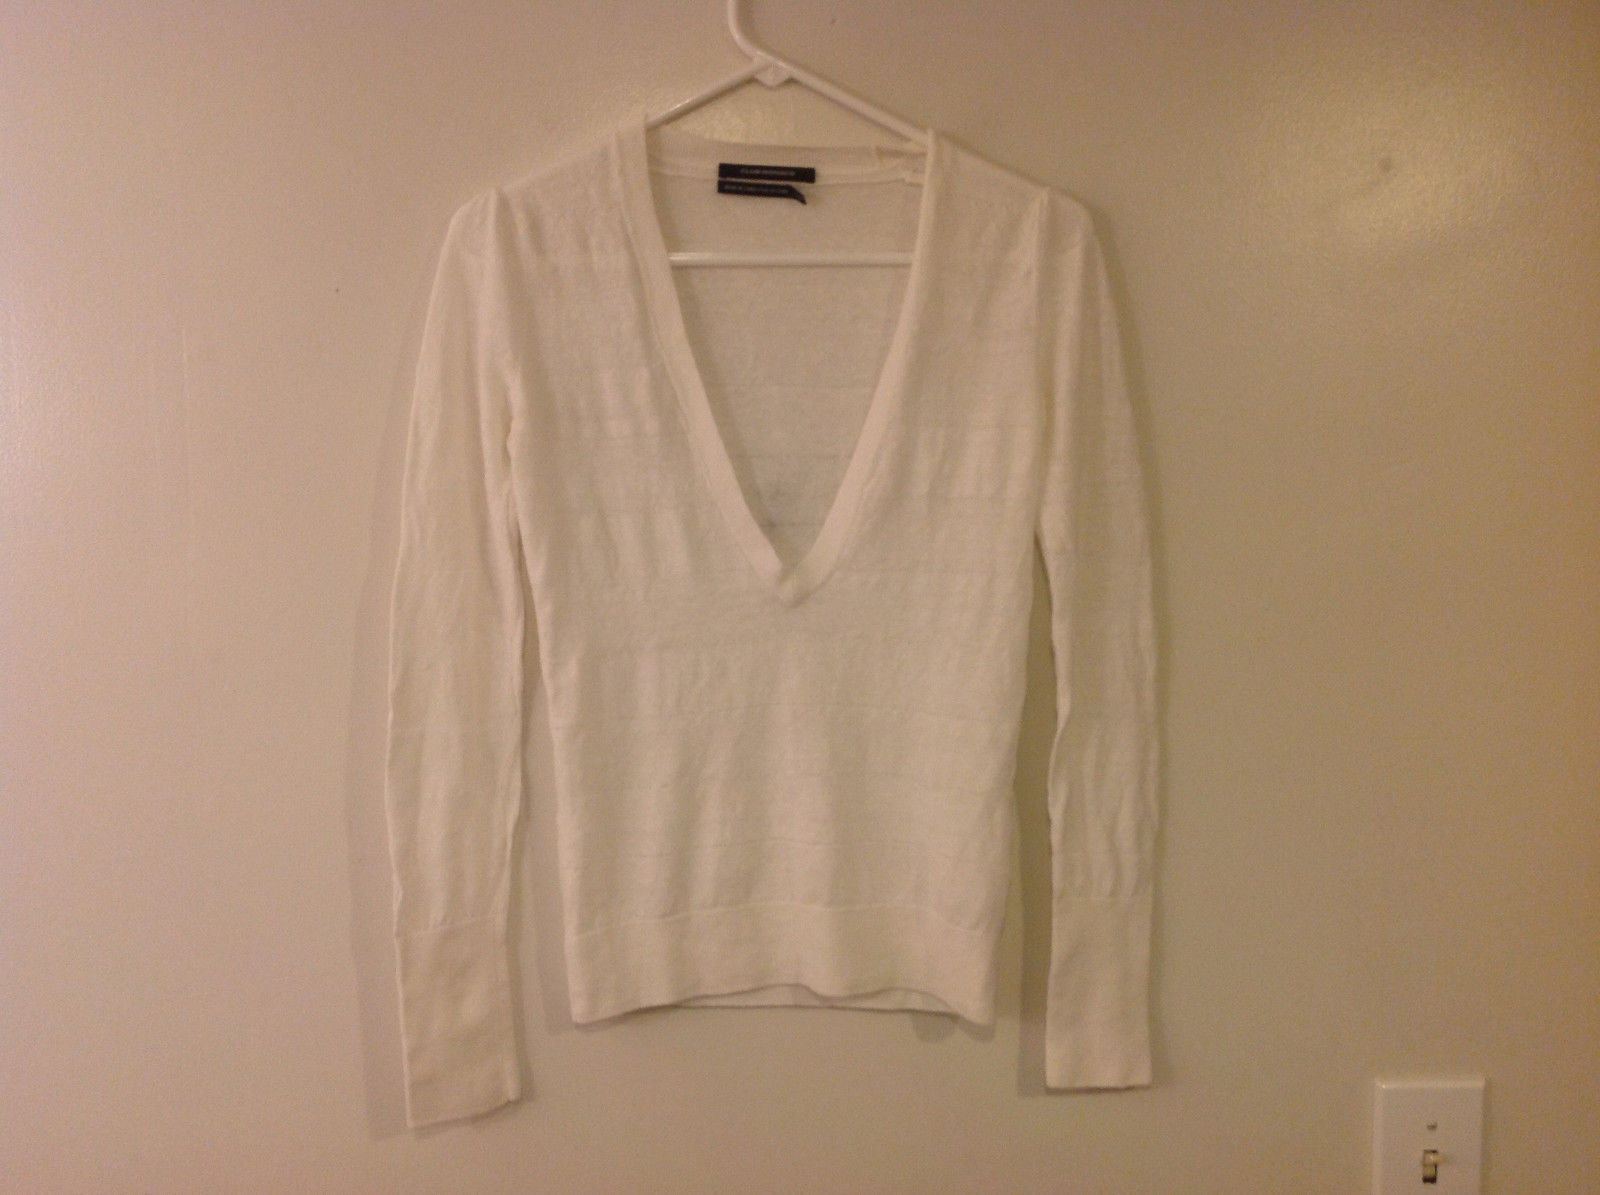 Club Monaco Women's Petite Size S Sweater Layering Top Deep V Neck Cream White